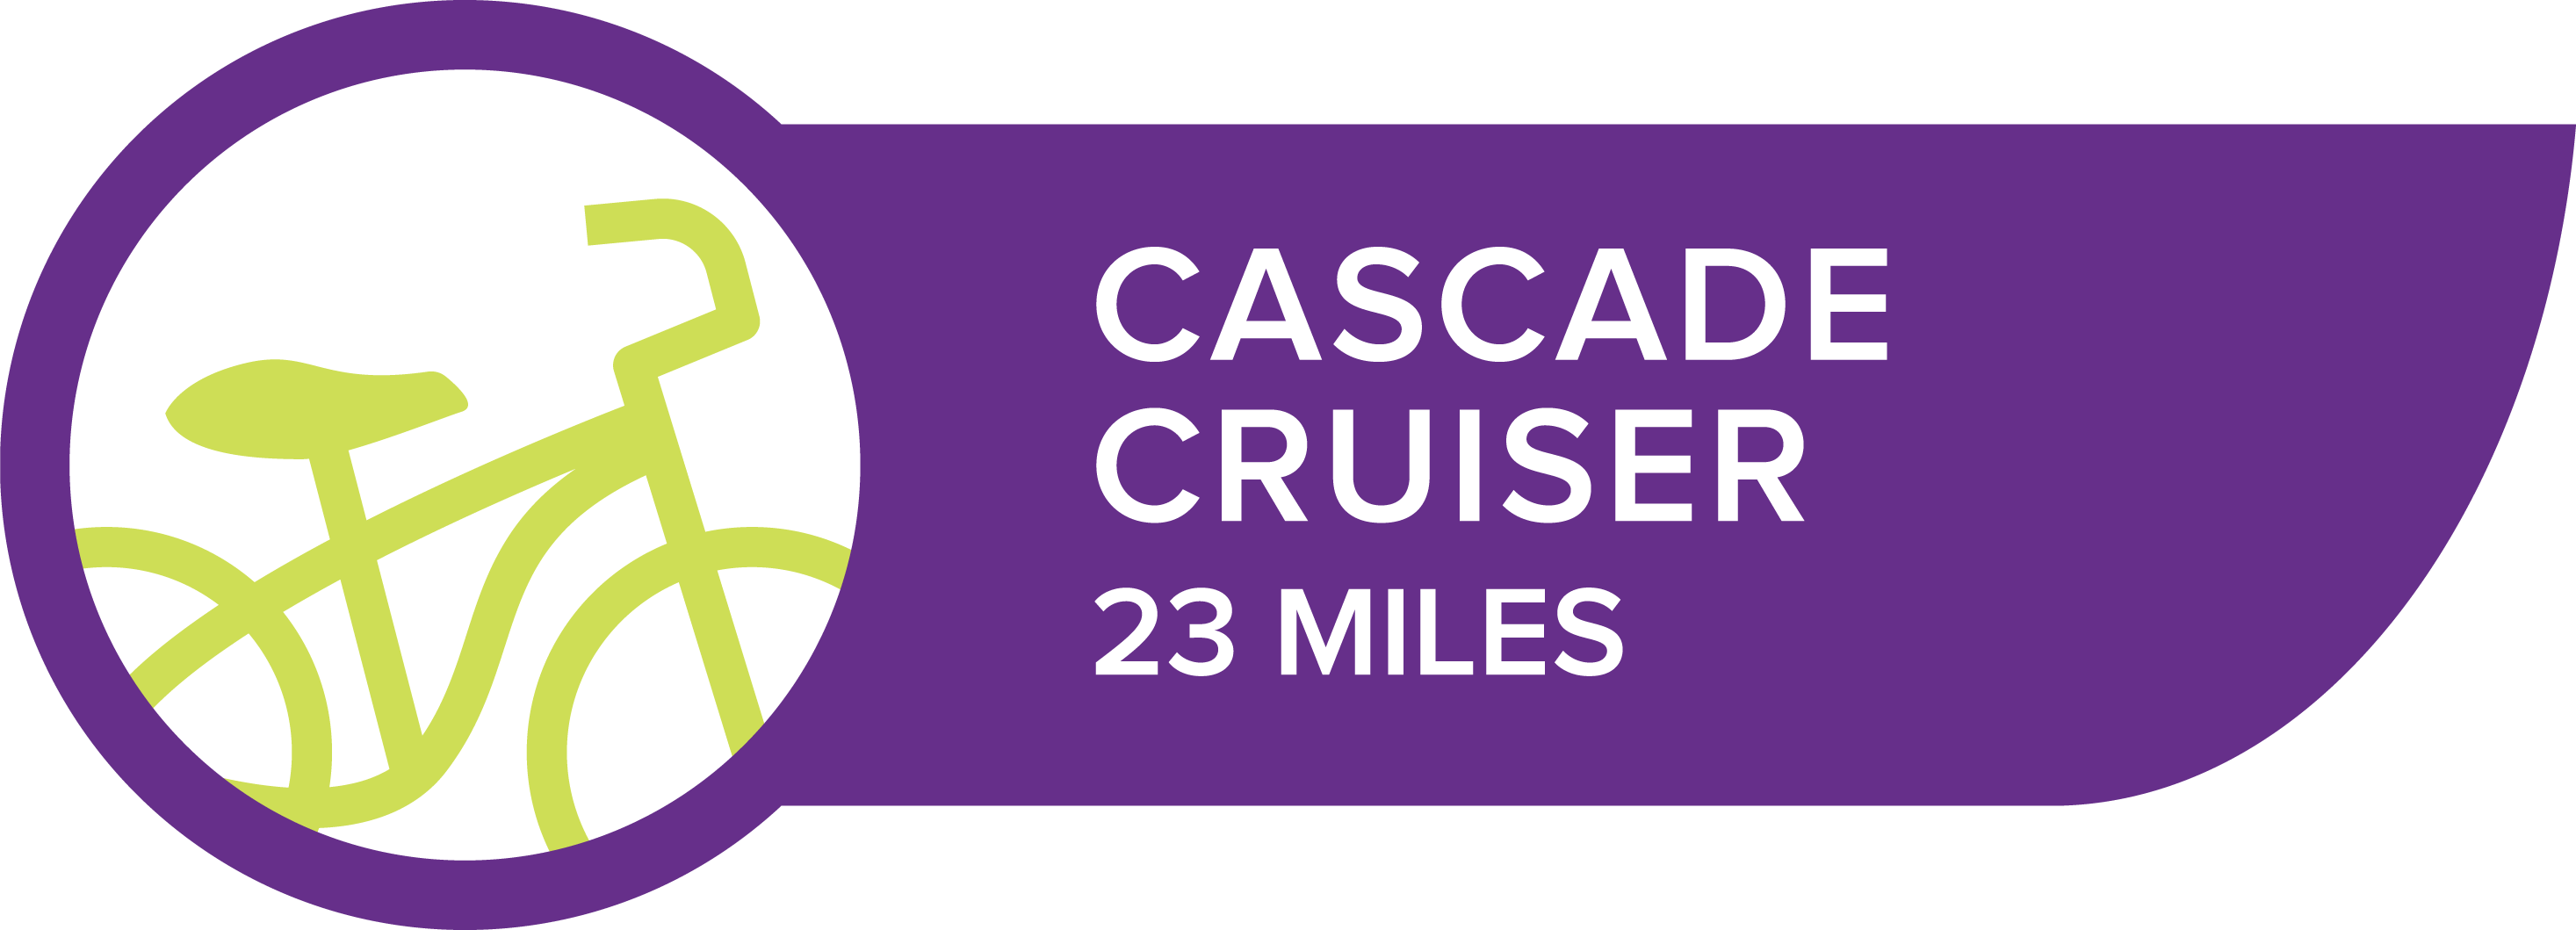 cascade cruiser badge